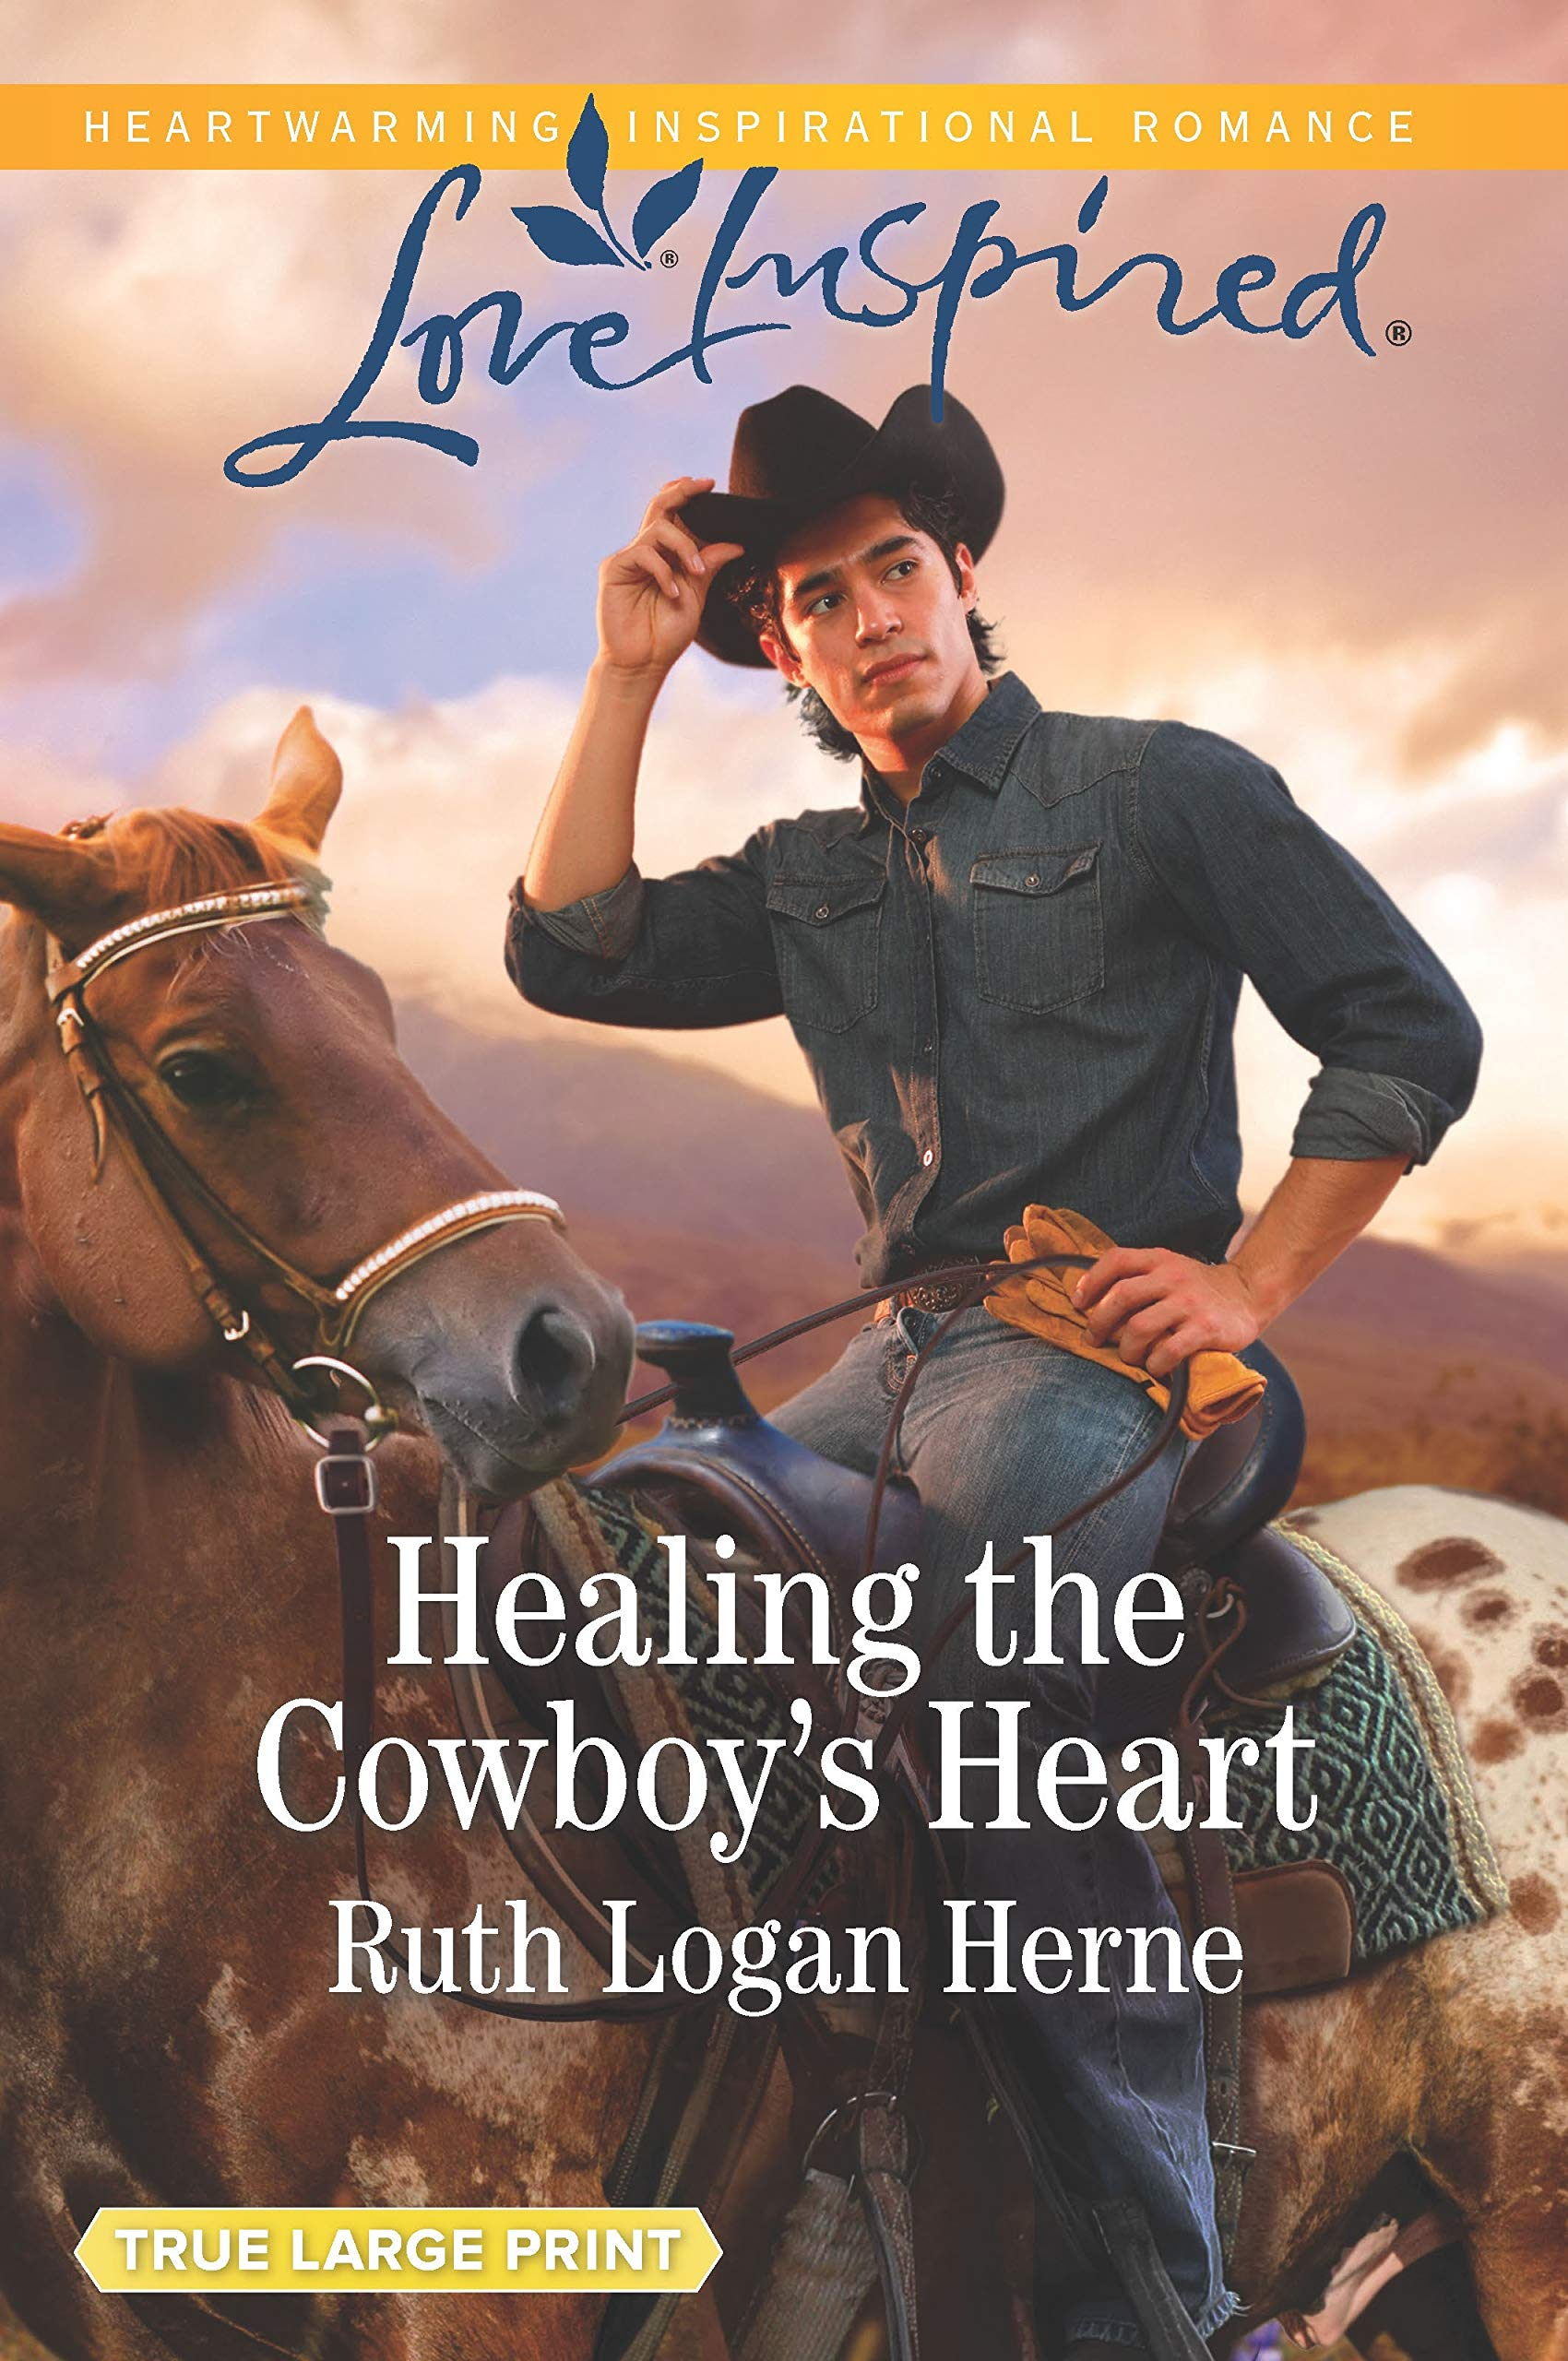 Image result for HEALING THE COWBOY'S HEART RUTH LOGAN HERNE